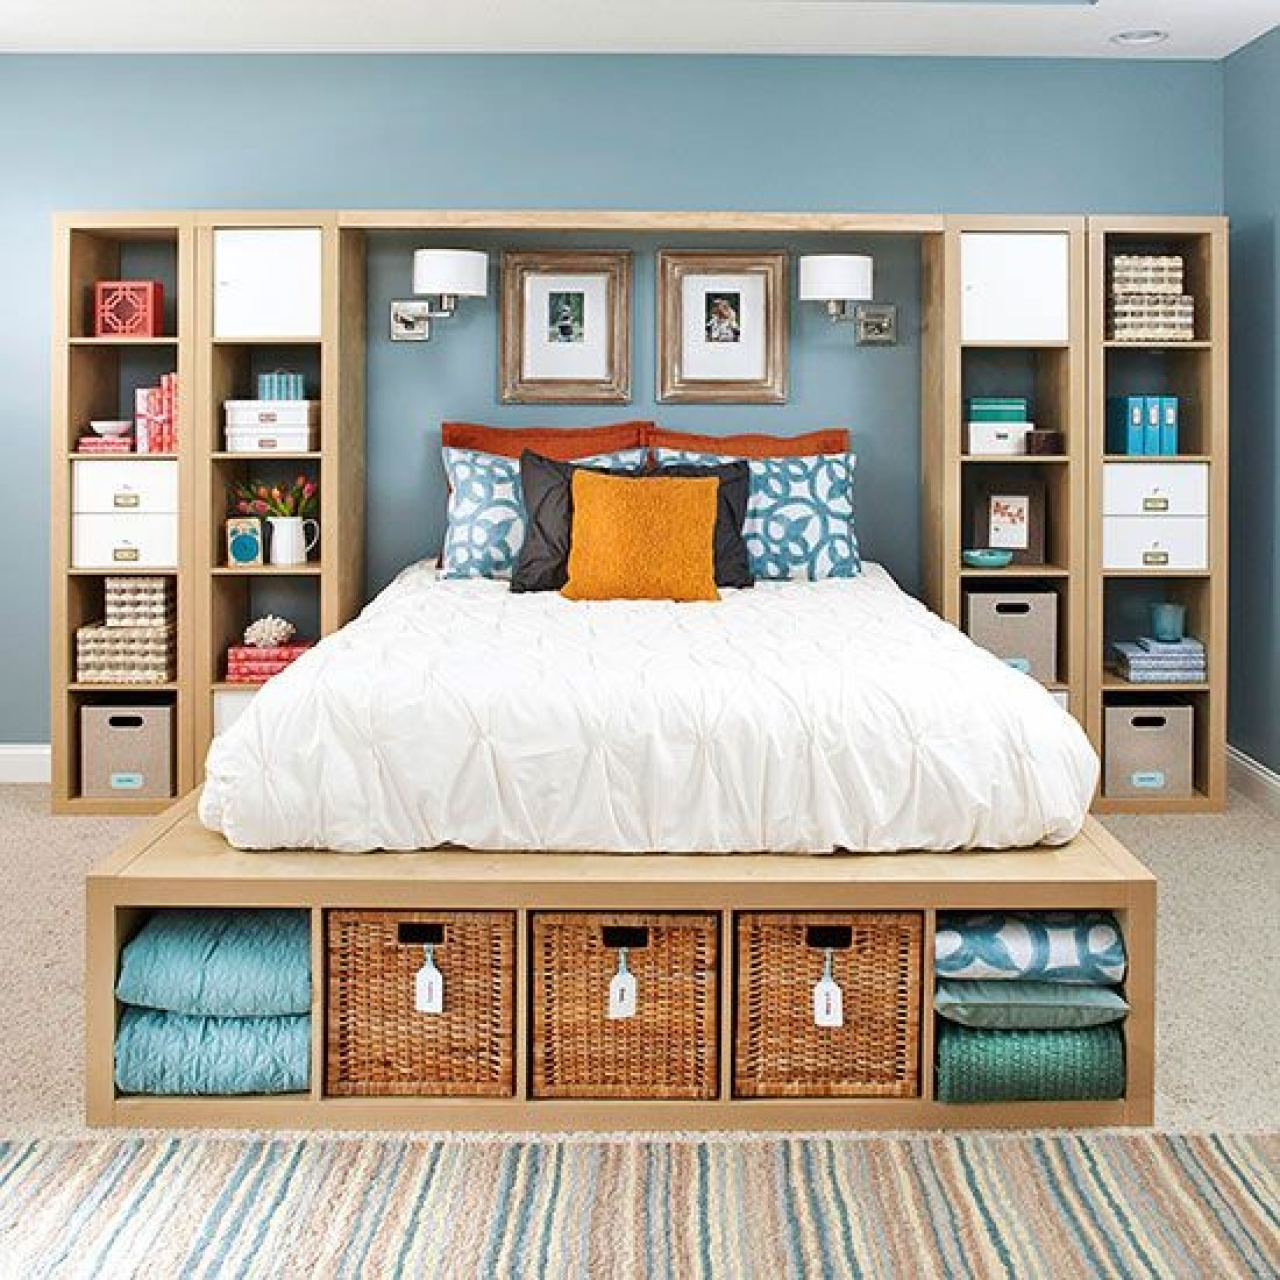 1000 ideas about bedroom storage on pinterest bedroom storage with Bedroom Storage The Most Amazing As well as Gorgeous Bedroom Storage For Comfortable - Gallery Home Design